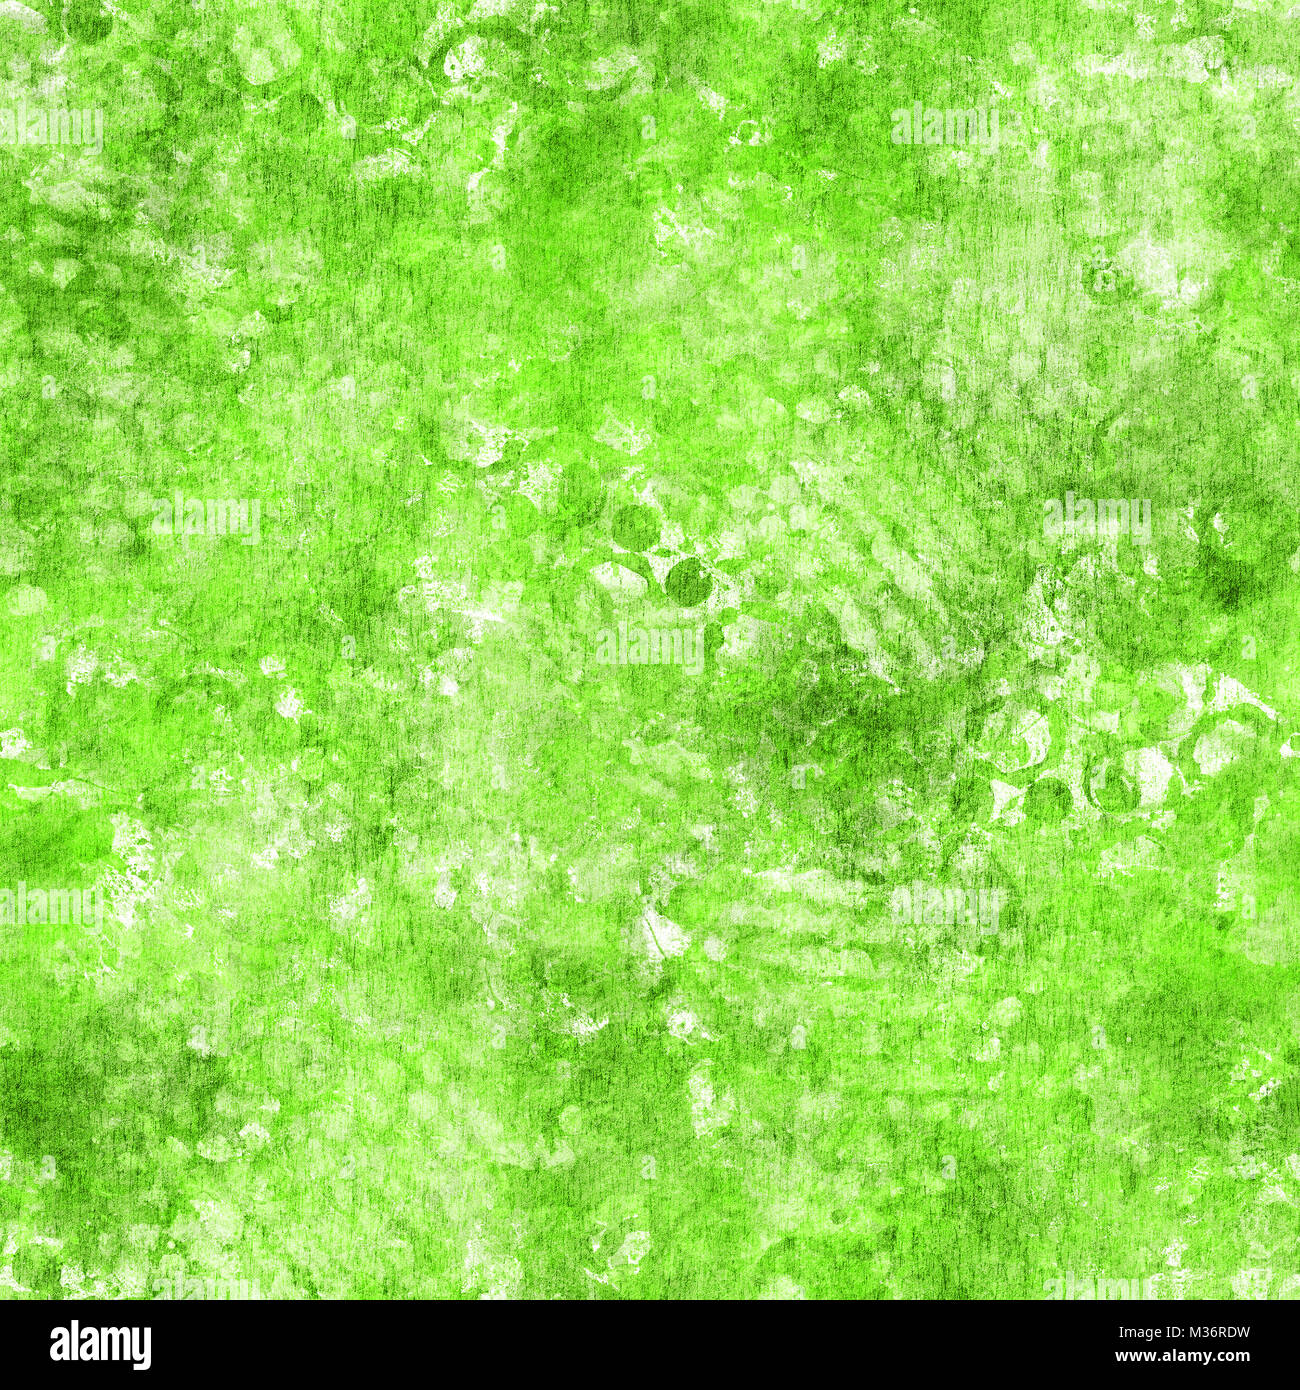 Seamless abstract green background texture - Stock Image